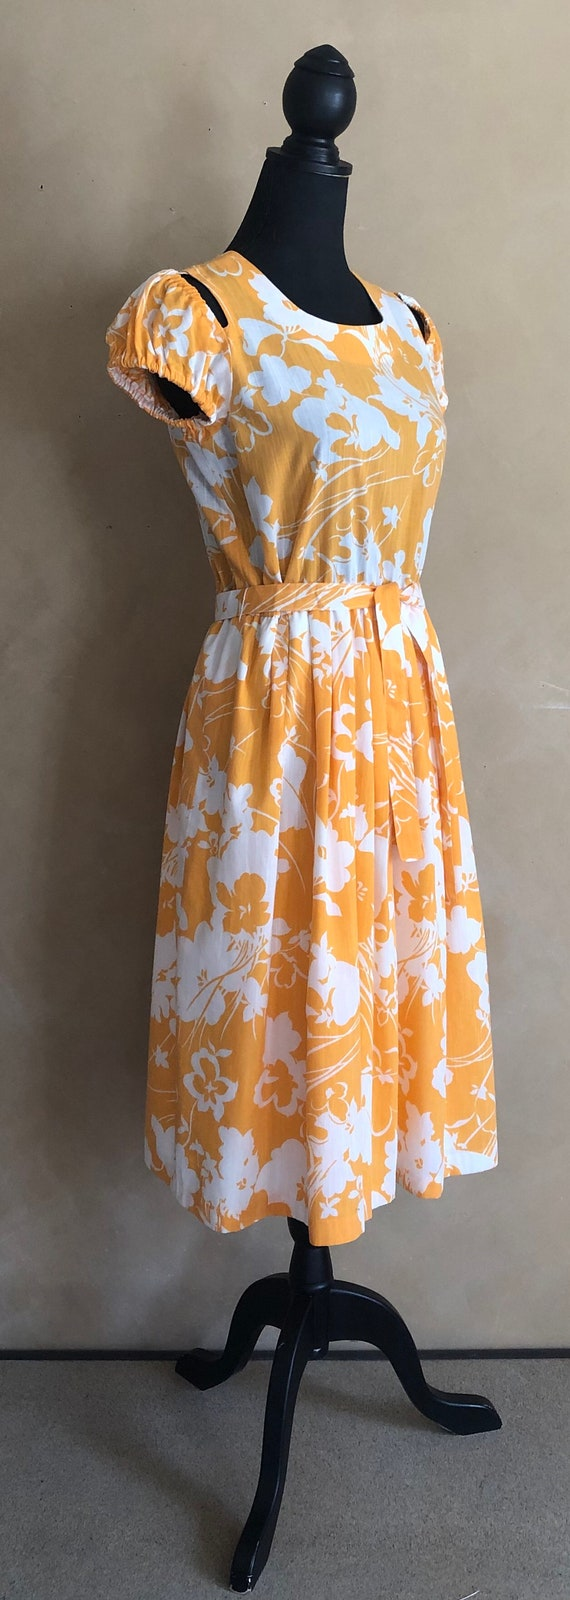 Vintage 70's Marigold  Yellow Floral Dress - image 4